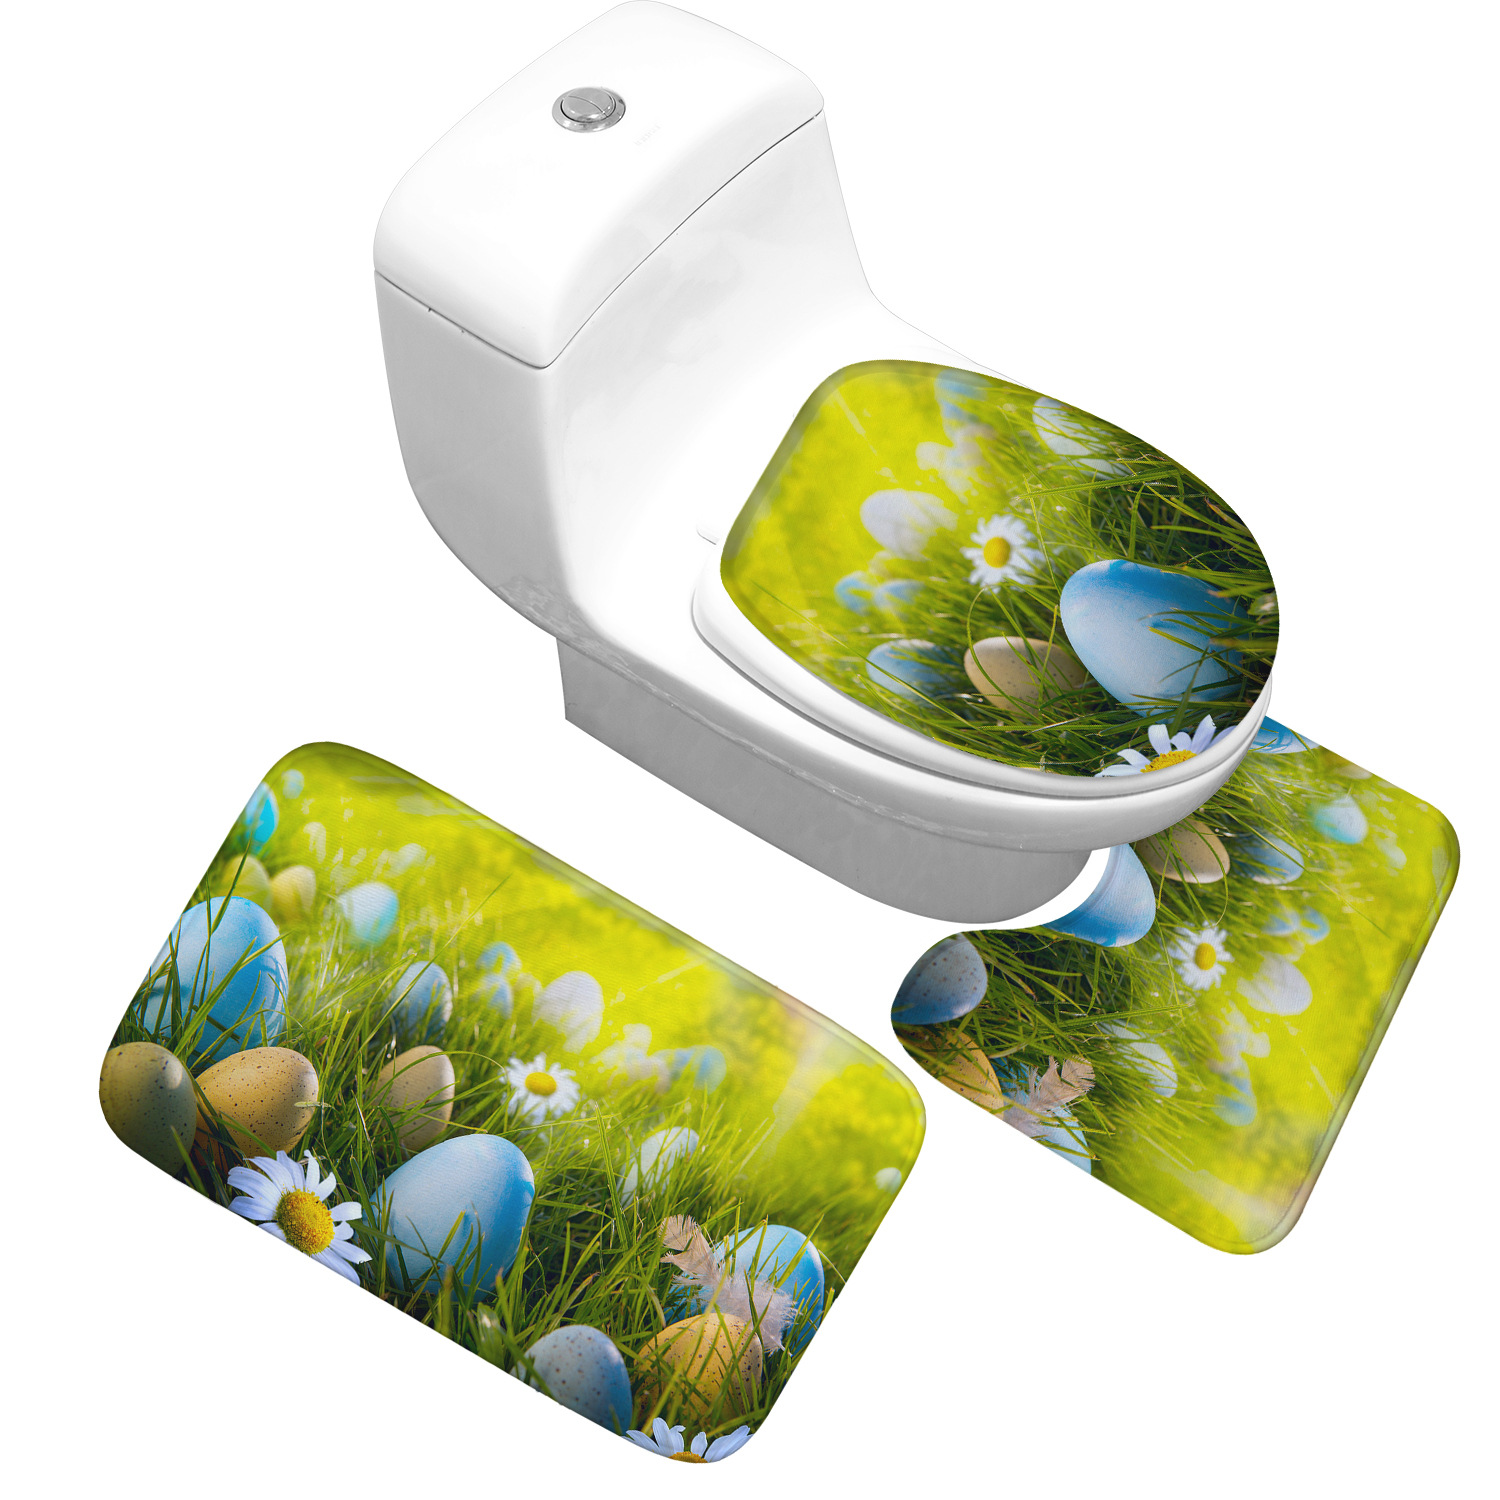 Honlaker Thicken Flannel Bathroom Absorbent Mats Toilet Mats and Cover 3 Sets Bath Toilet Mat Bath Painted Eggshell Rugs Mats